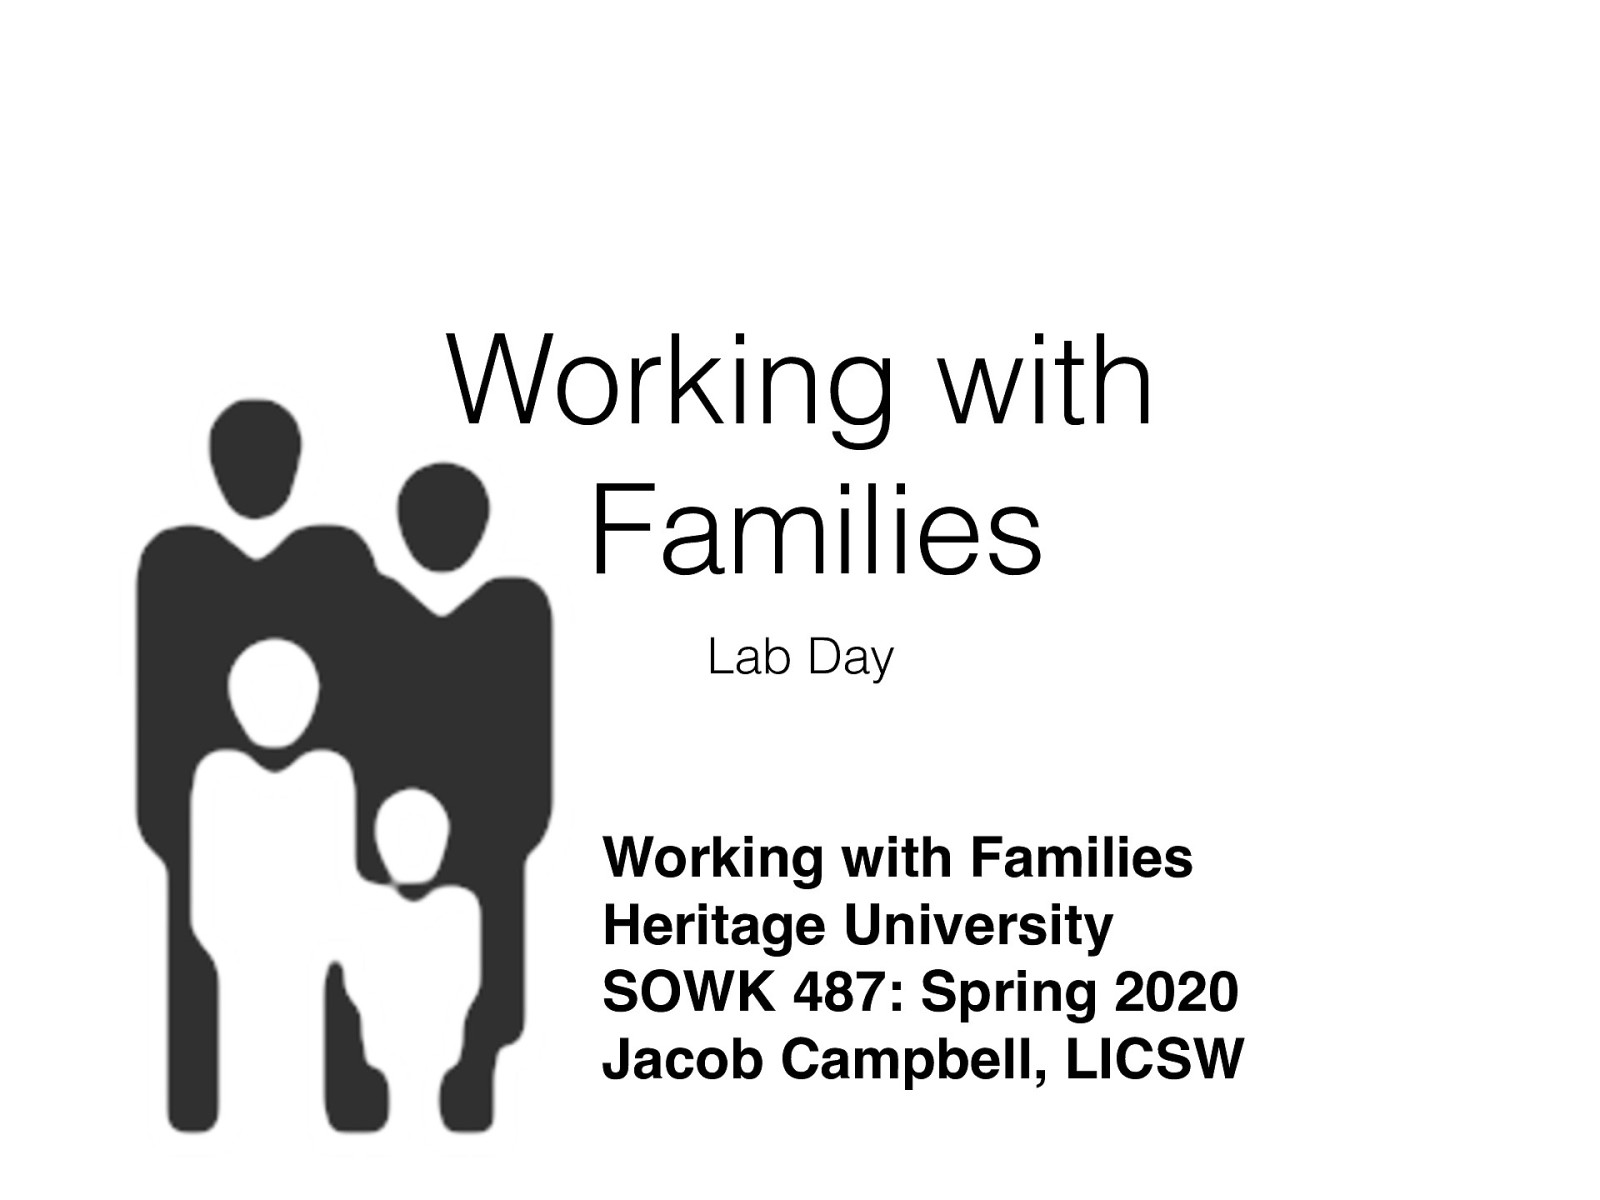 Week 12 - Lab Day - Working with Families